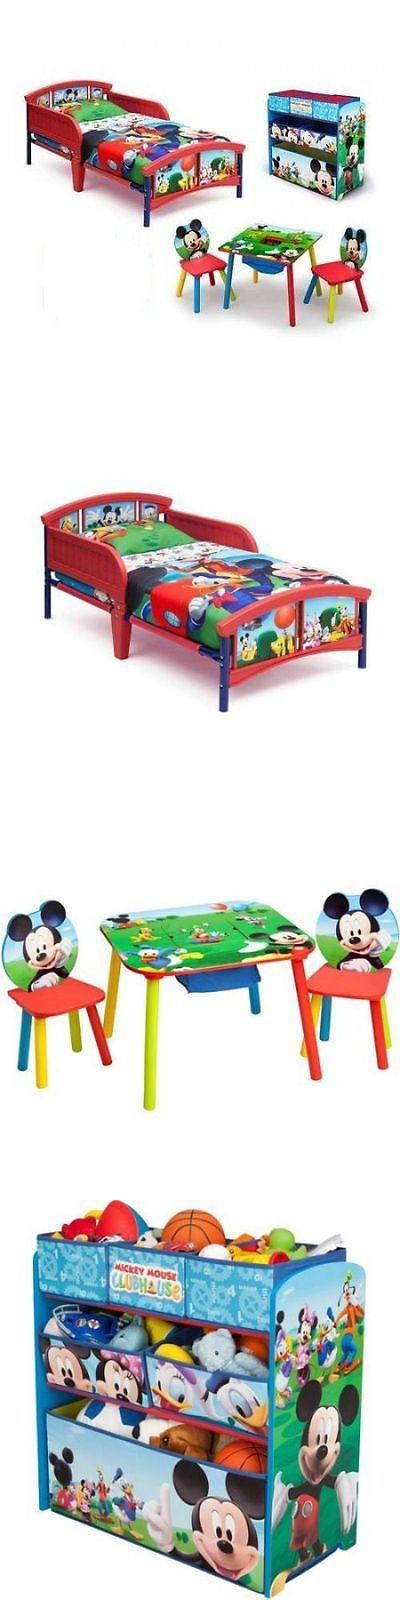 Kids Furniture: Cheap Bedroom Sets Disney Mickey Mouse Toddler Furniture Bed Toy Organizer Table BUY IT NOW ONLY: $135.53